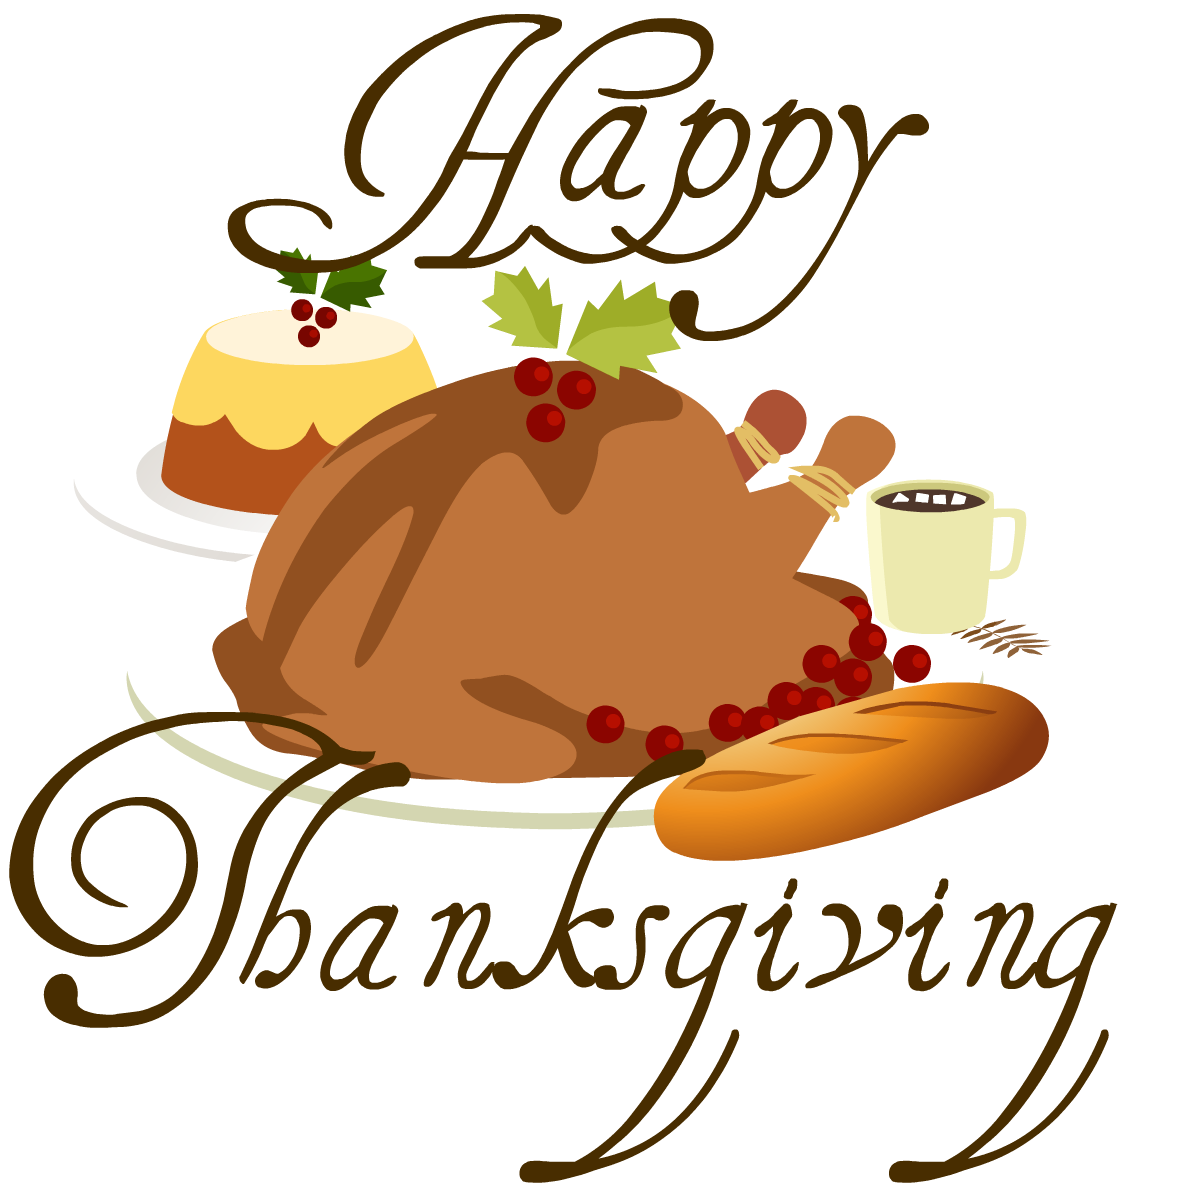 17 Thanks Giving Pics Free Cliparts That You Can Download To You